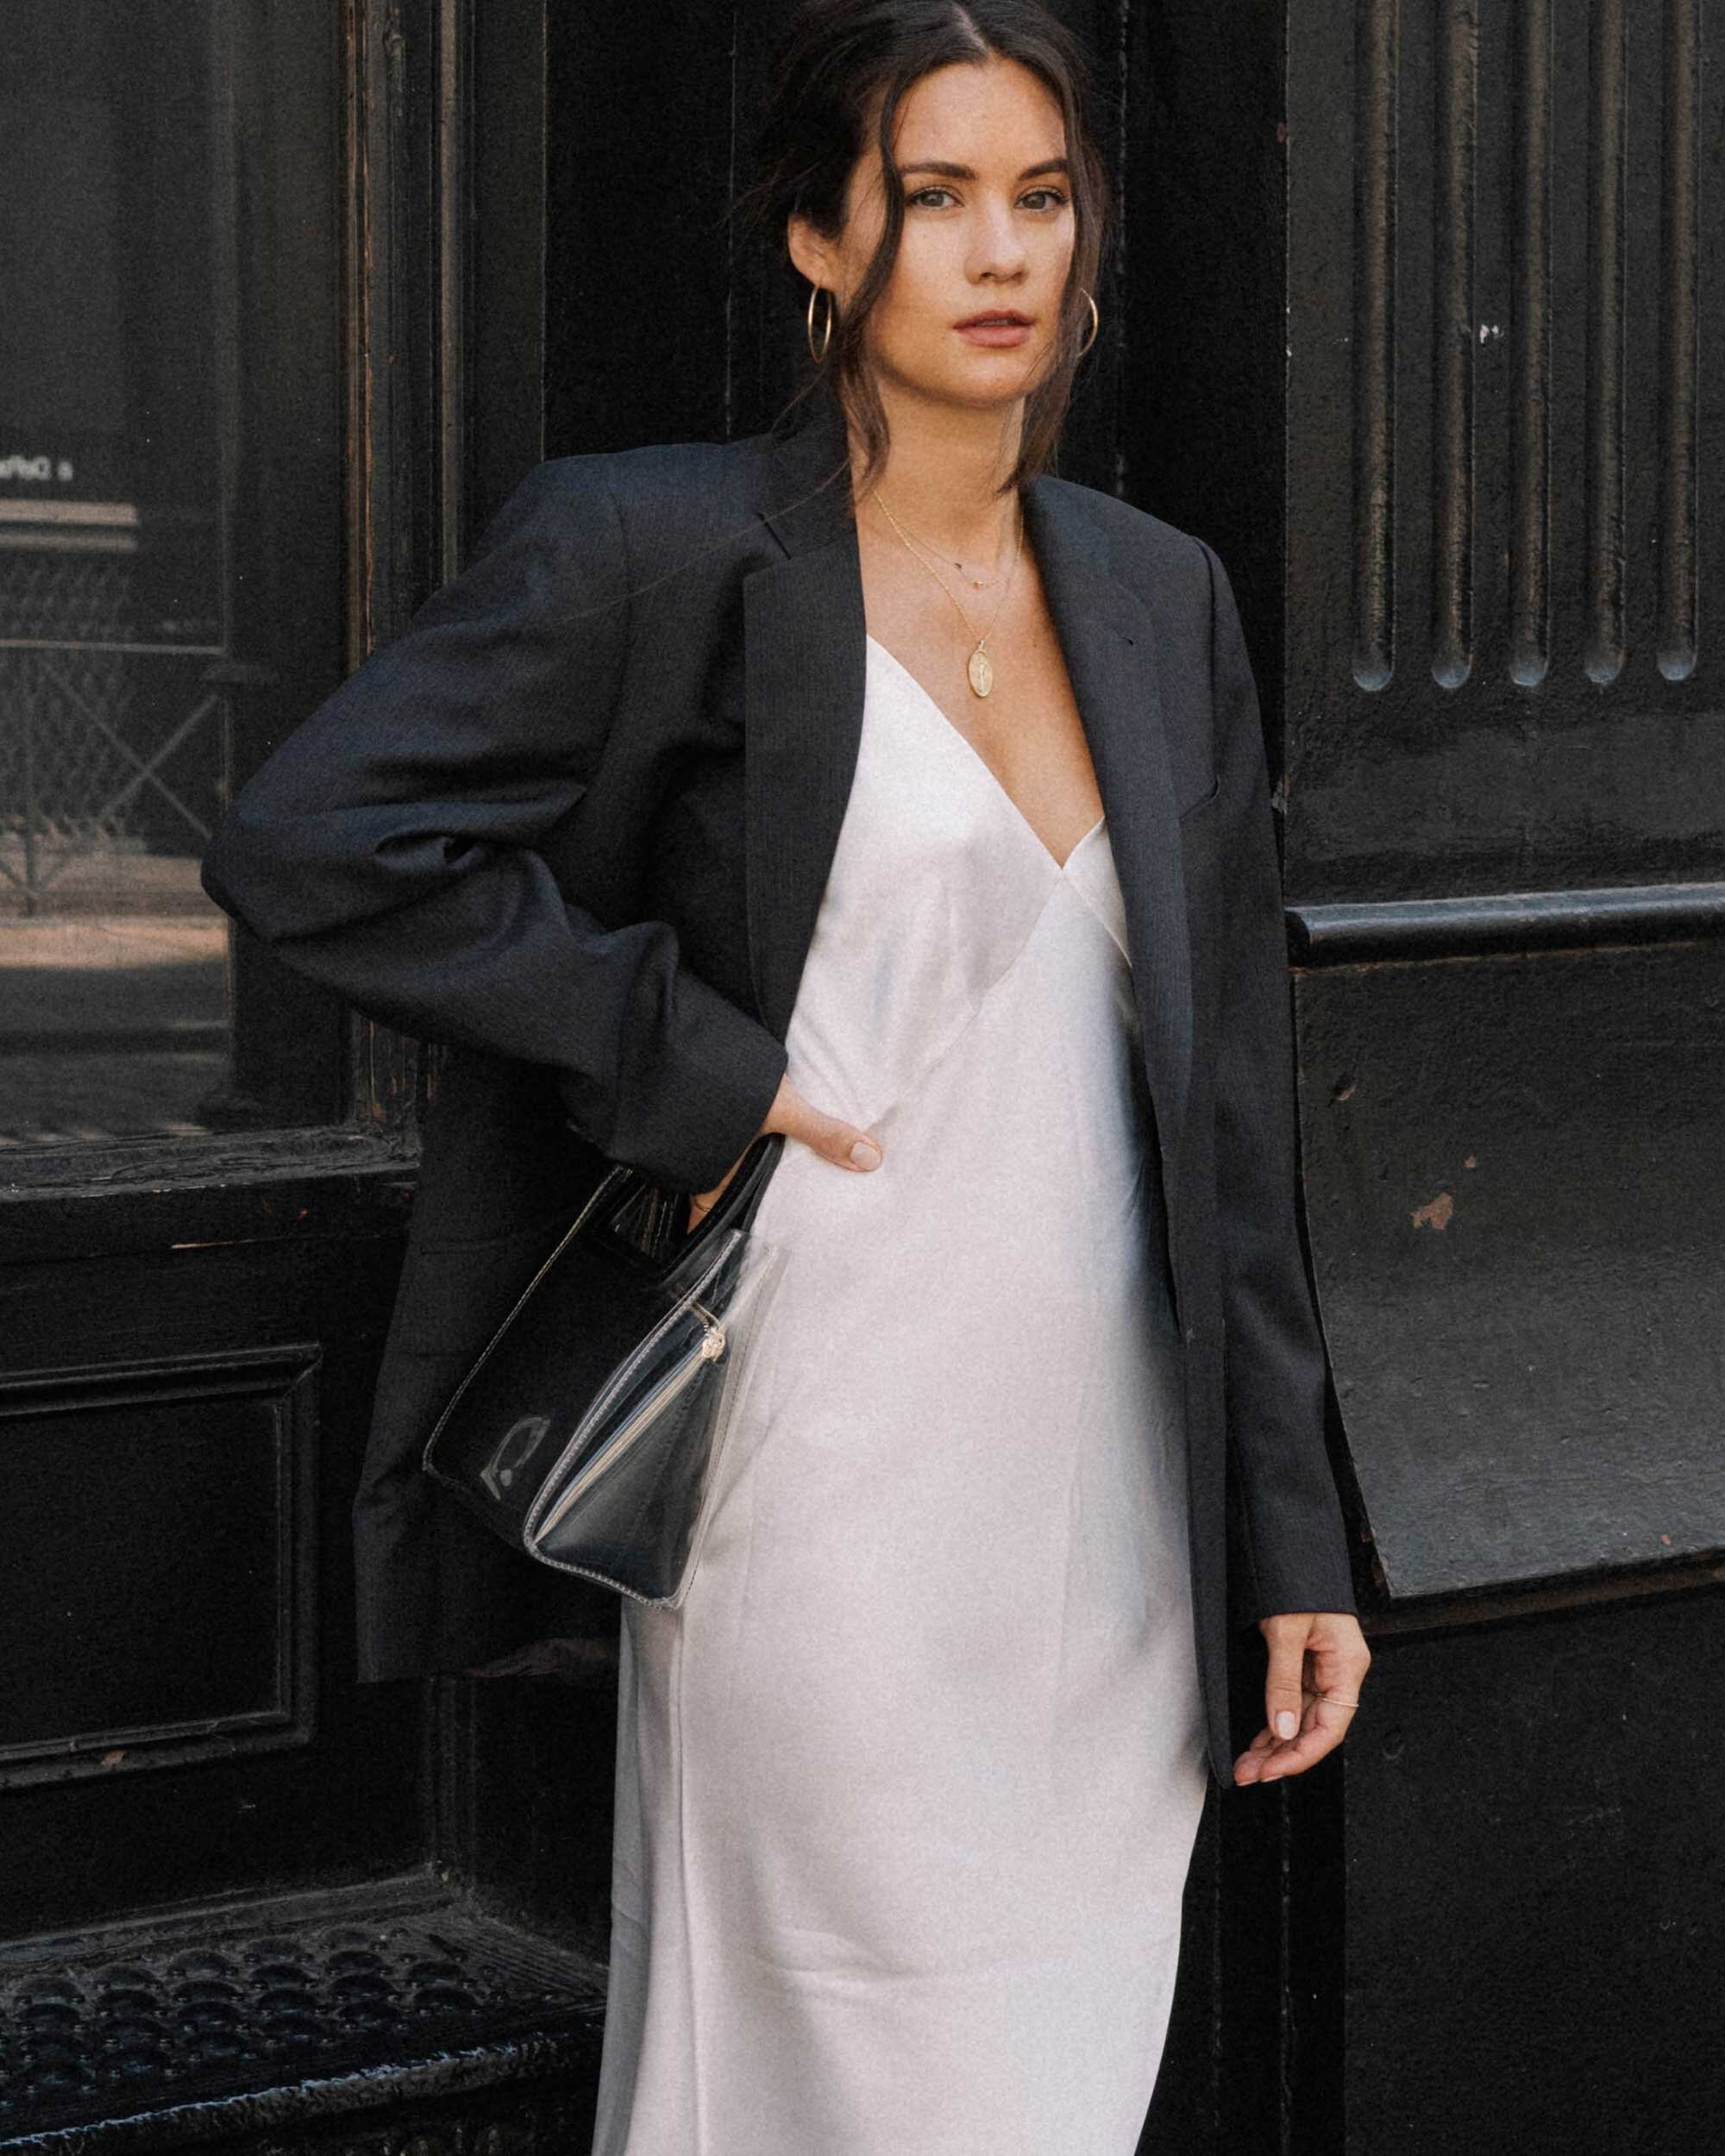 Early Fall Uniform - Layering Olivia von Halle Issa ivory slip dress with a men's wear inspired black blazer for the perfect early fall outfit.